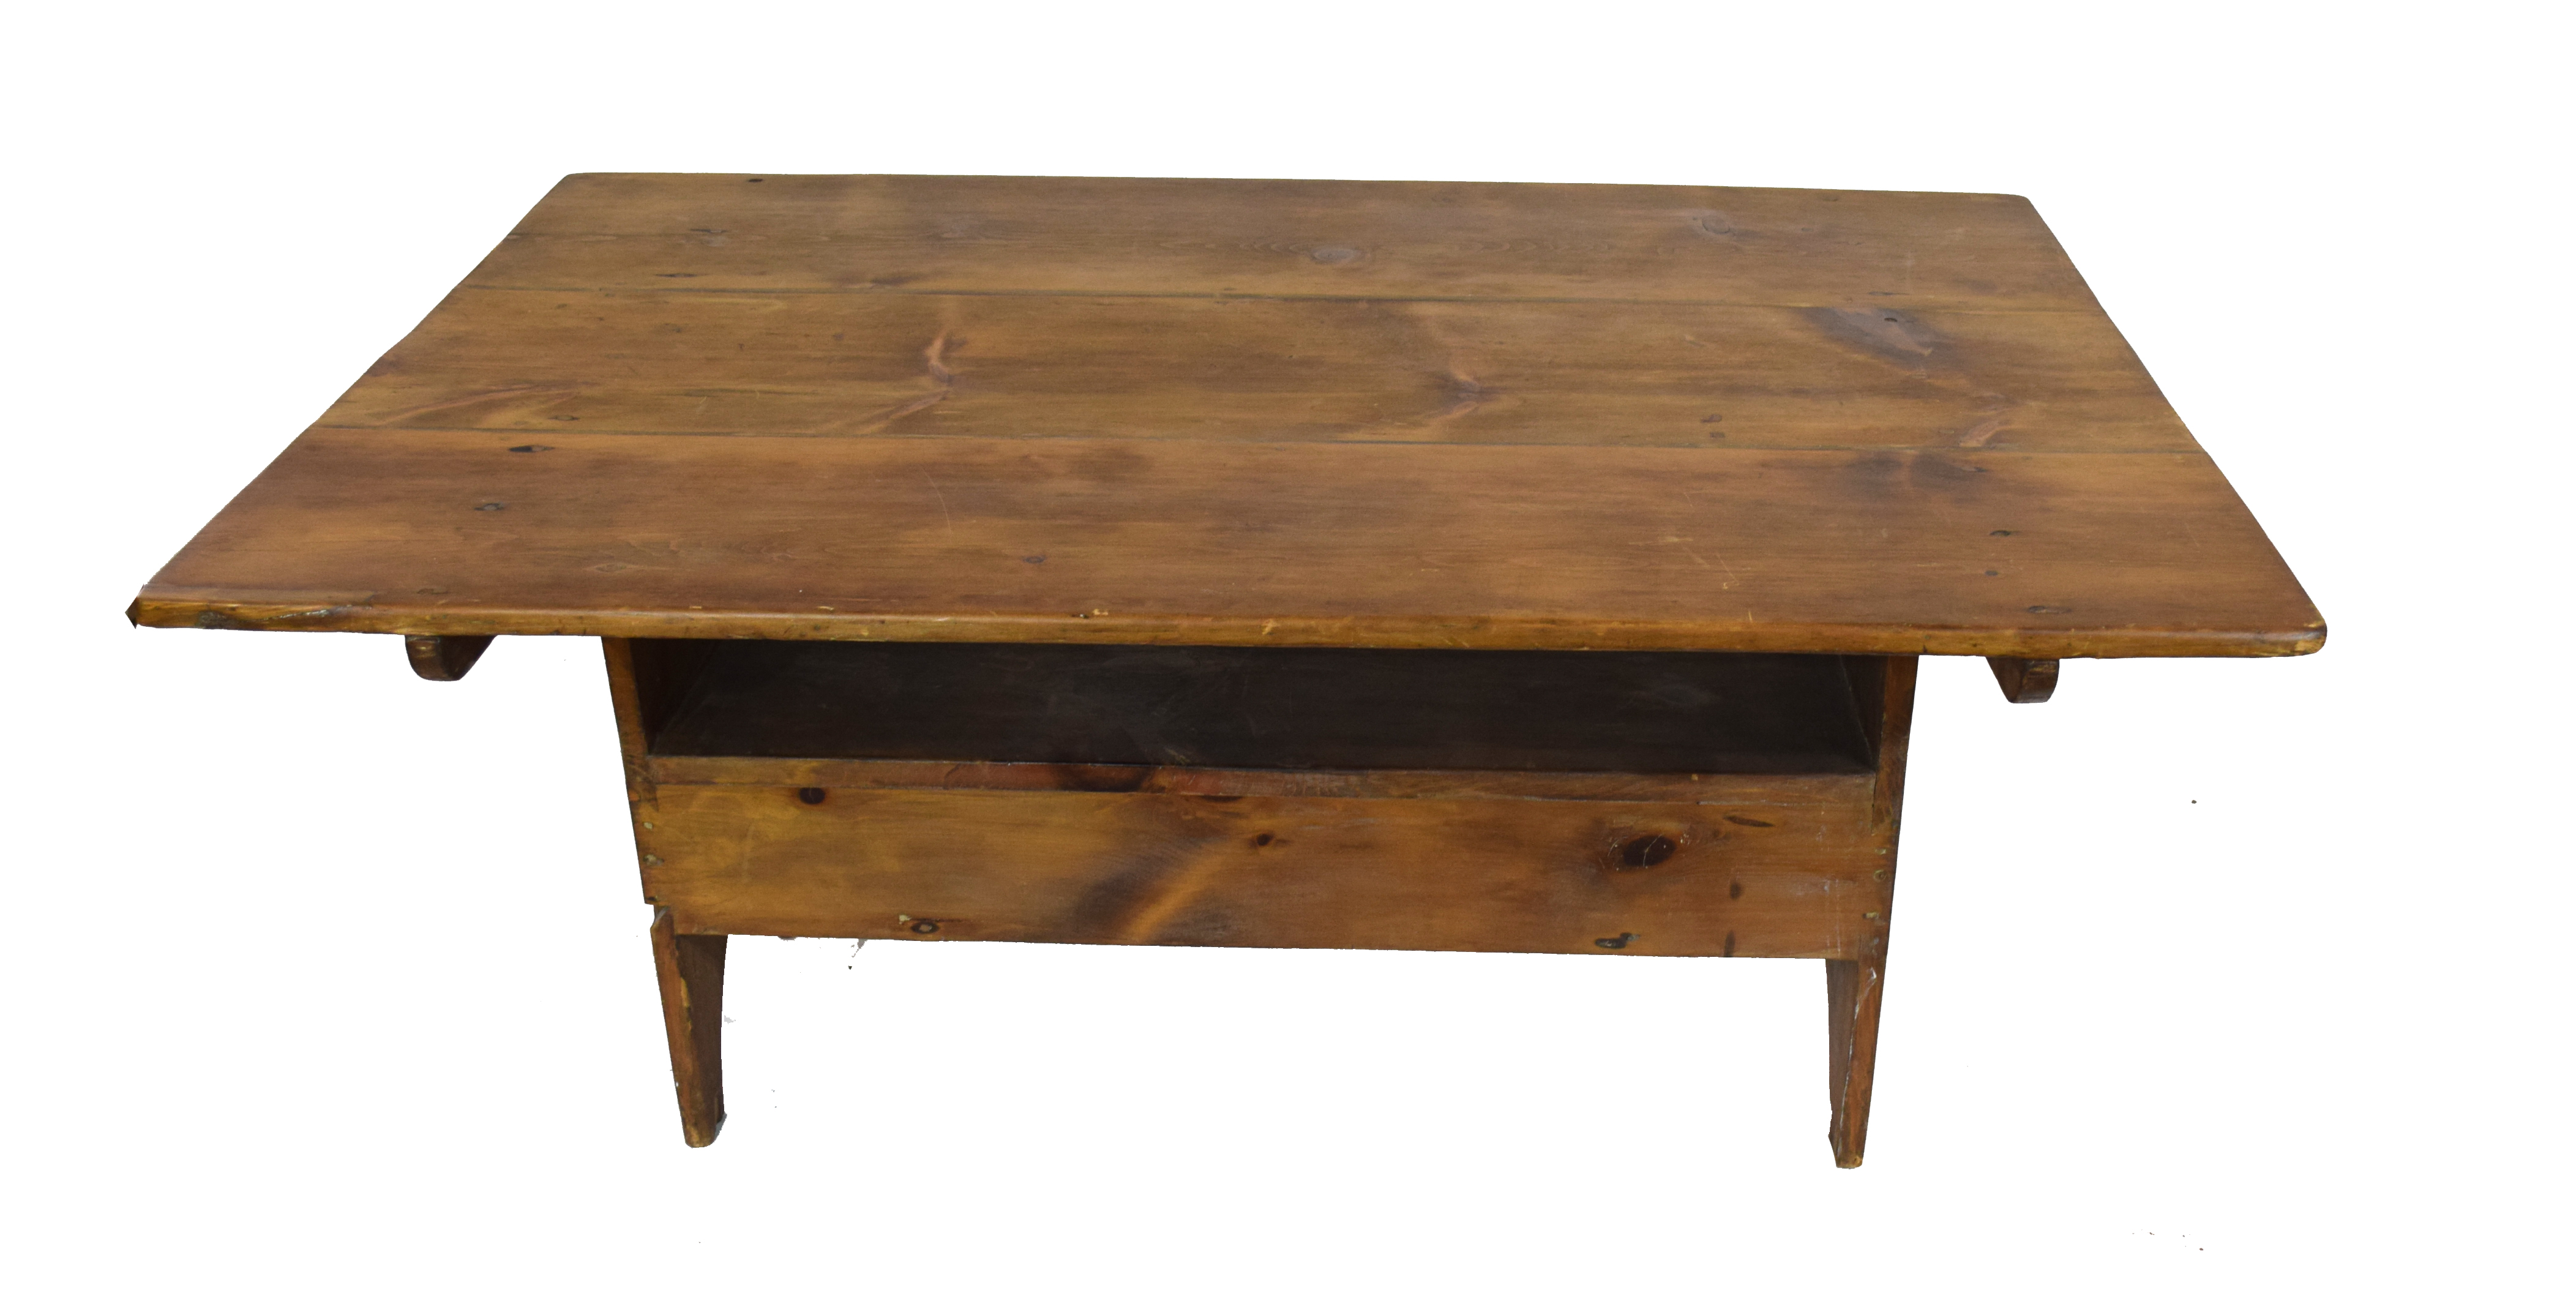 Unusual 20th century stained pine kitchen table, the rectangular top with pegged attachment to a - Image 2 of 4